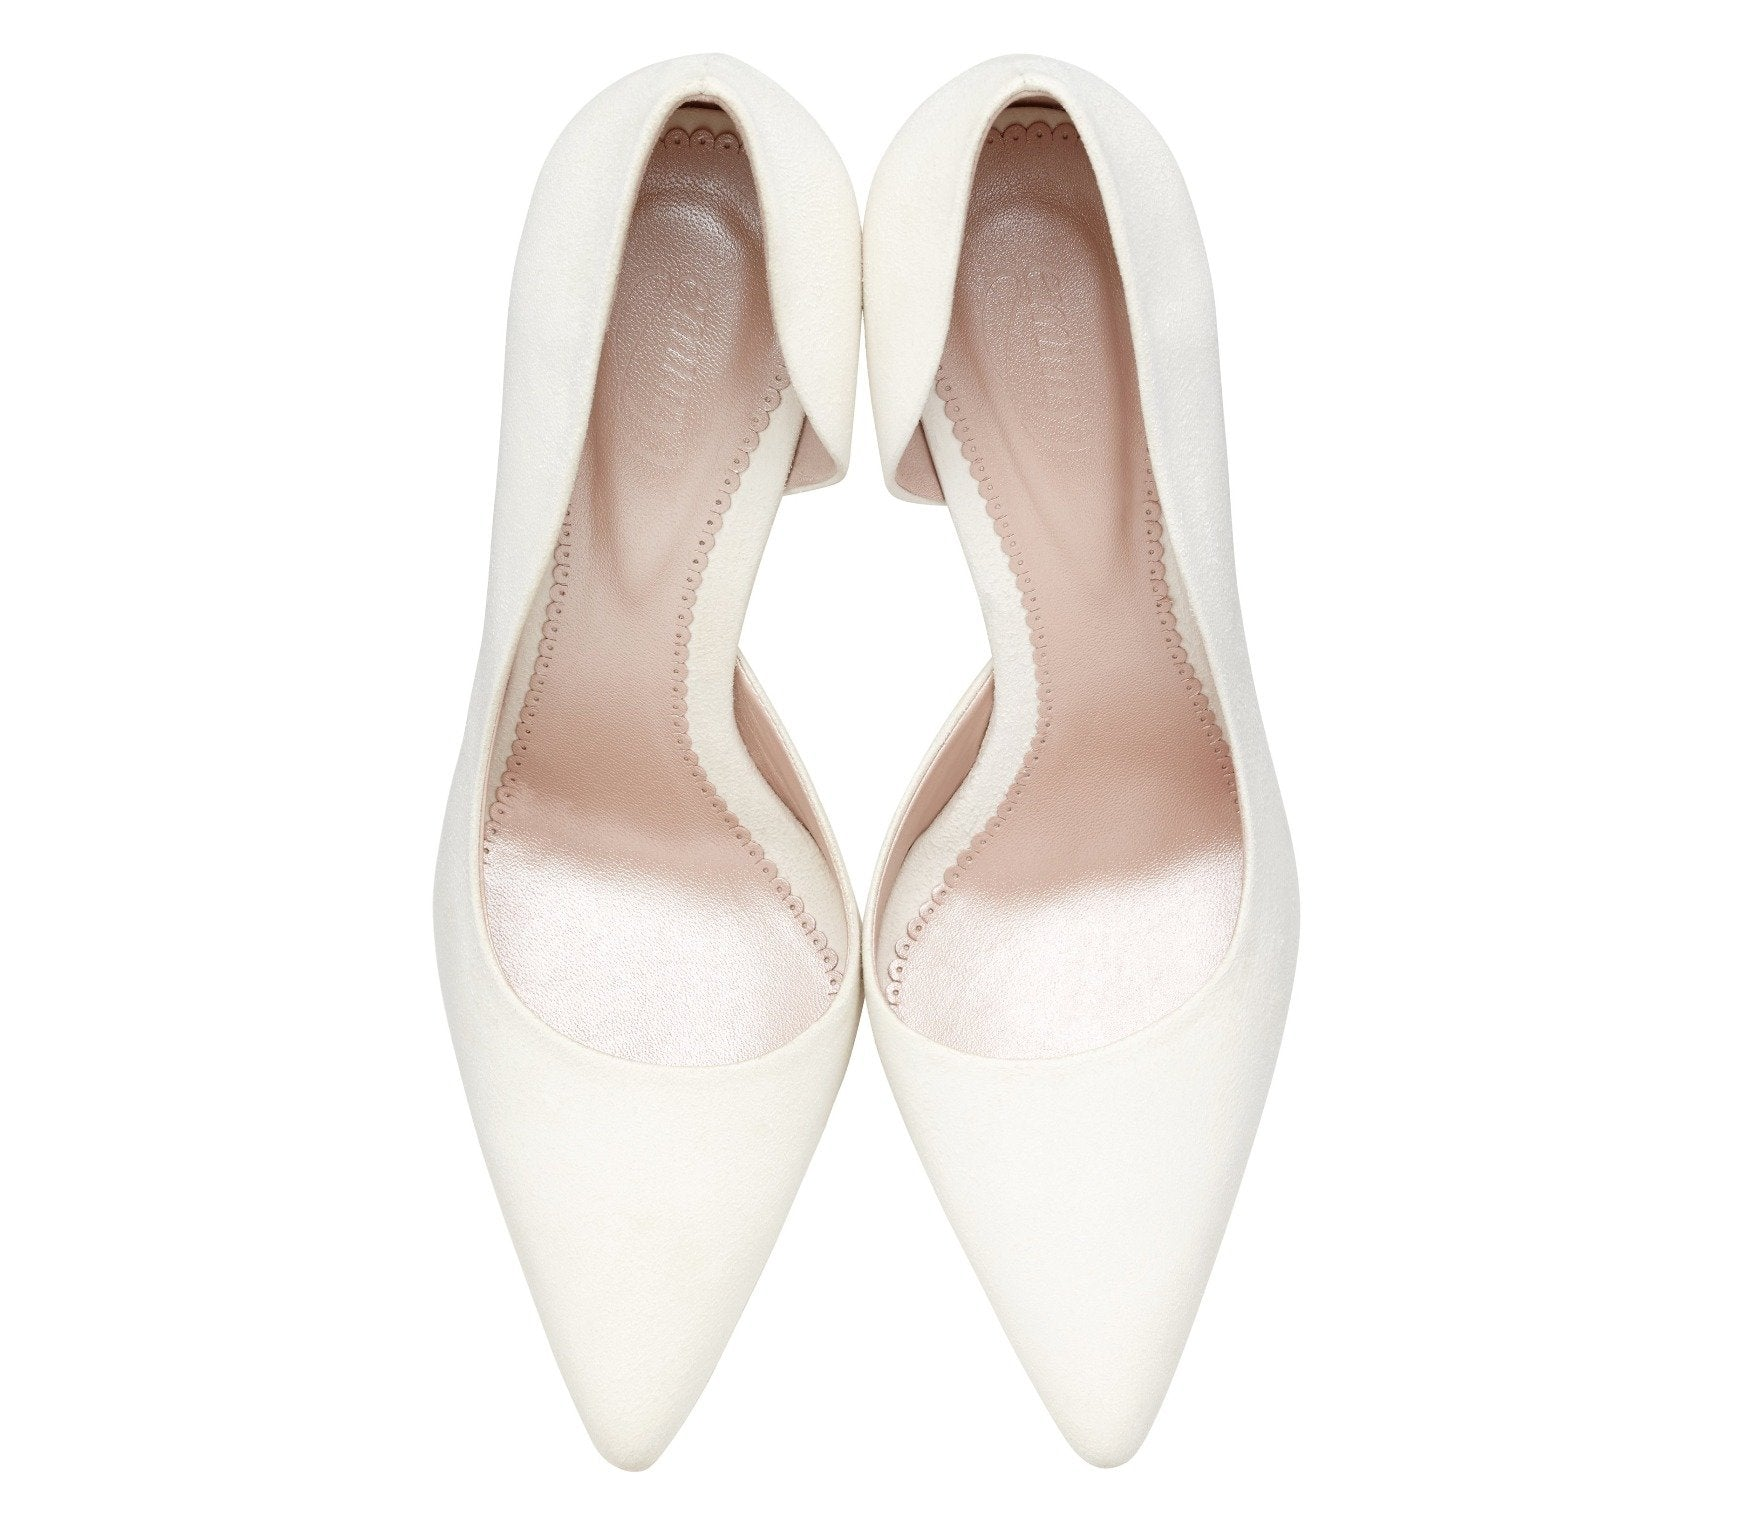 Amelia Ivory - Wedding Shoes - Suede Half D'Orsay Shape - Emmy London - Above View